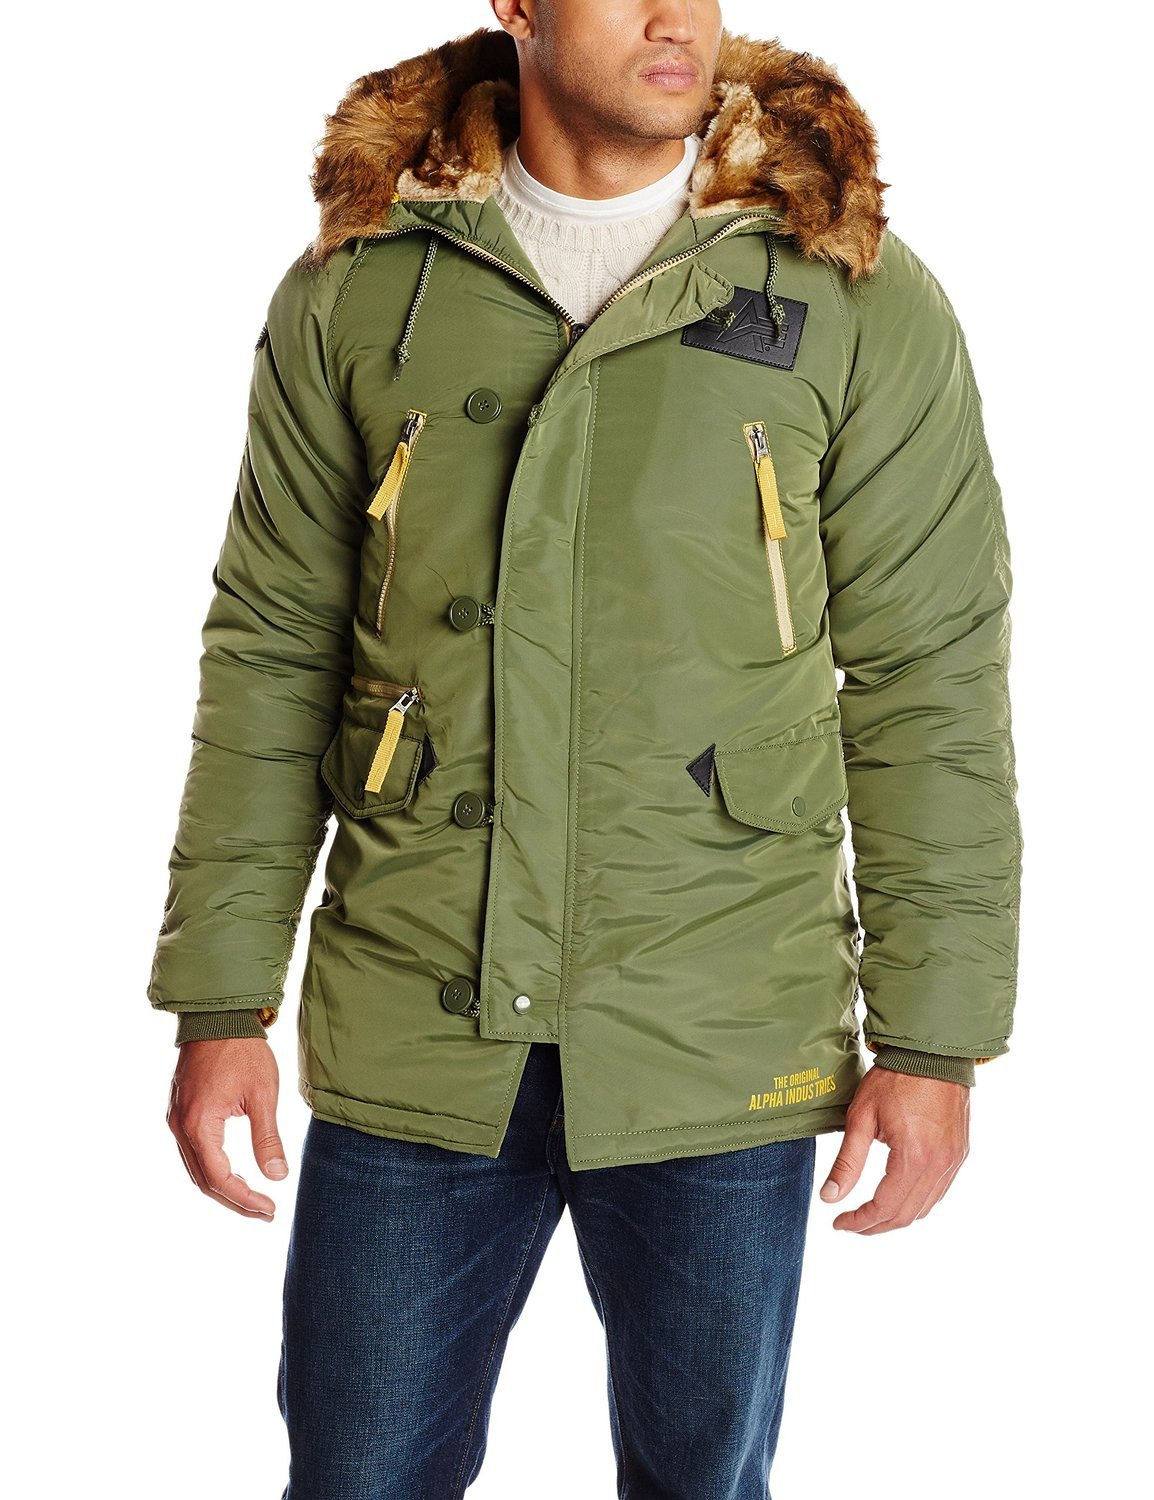 Куртка Аляска - N-3B Inclement Parka (оливковая - D.green)